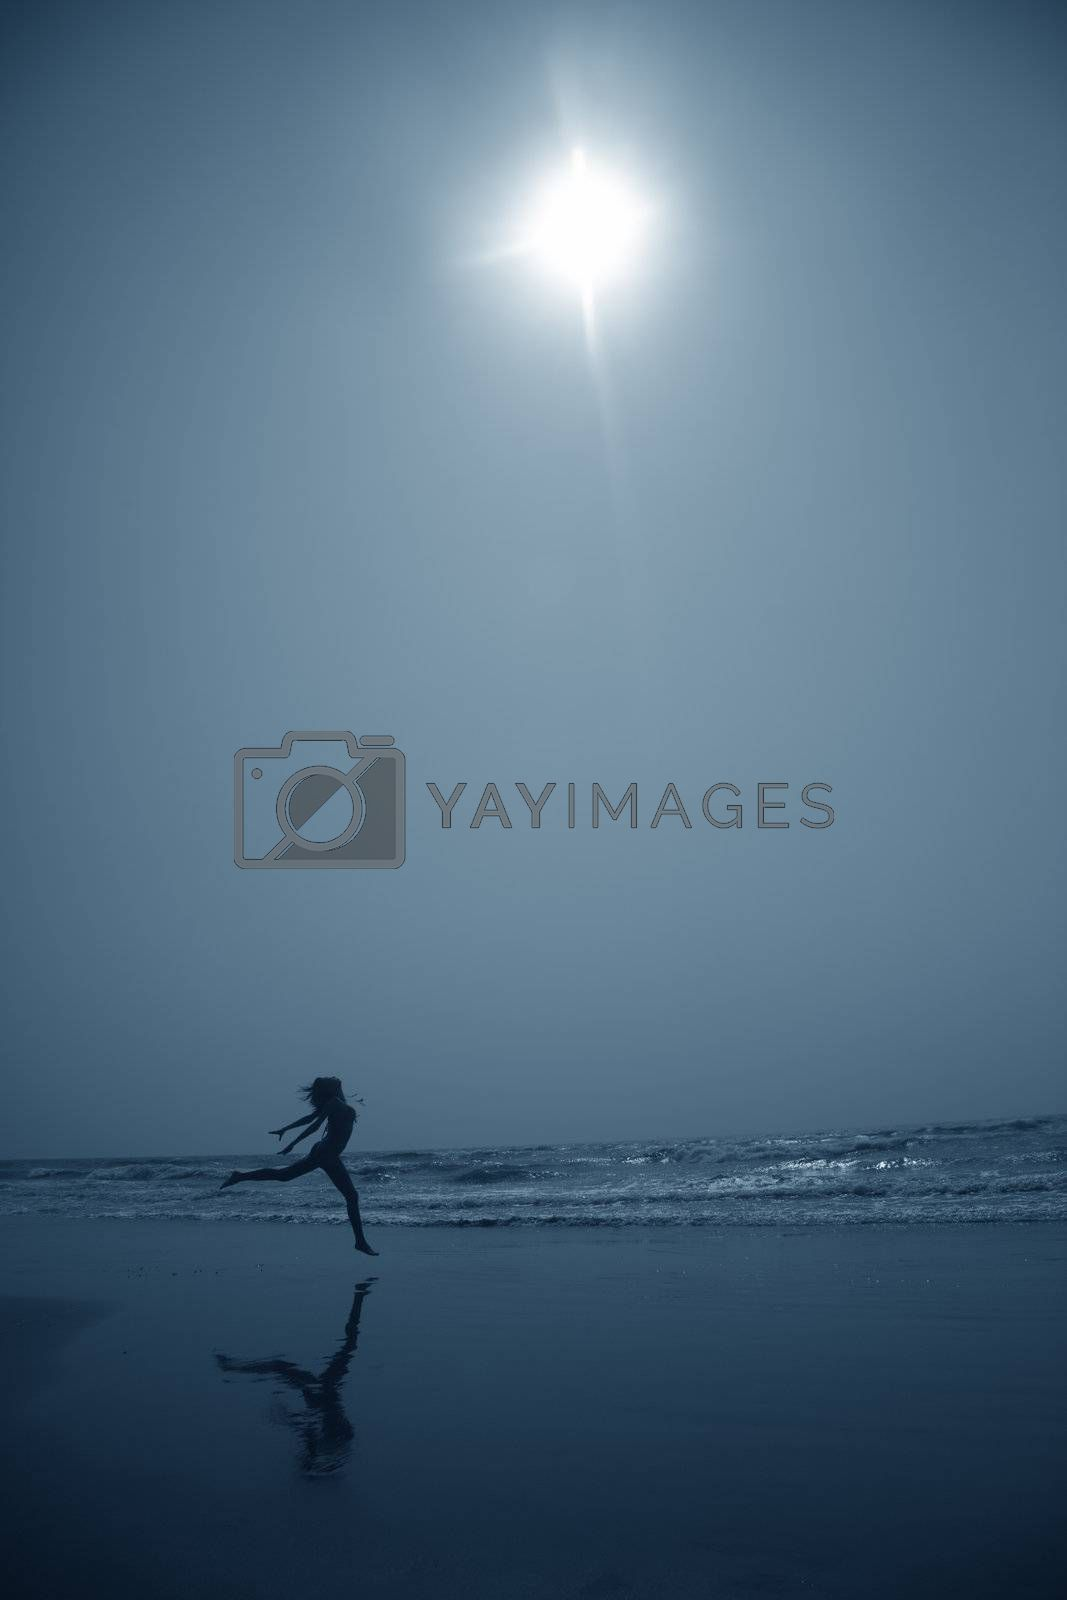 Silhouette of the lady dancing at the beach in deep dark night. Artistic blue colors toning added for coolness of the night